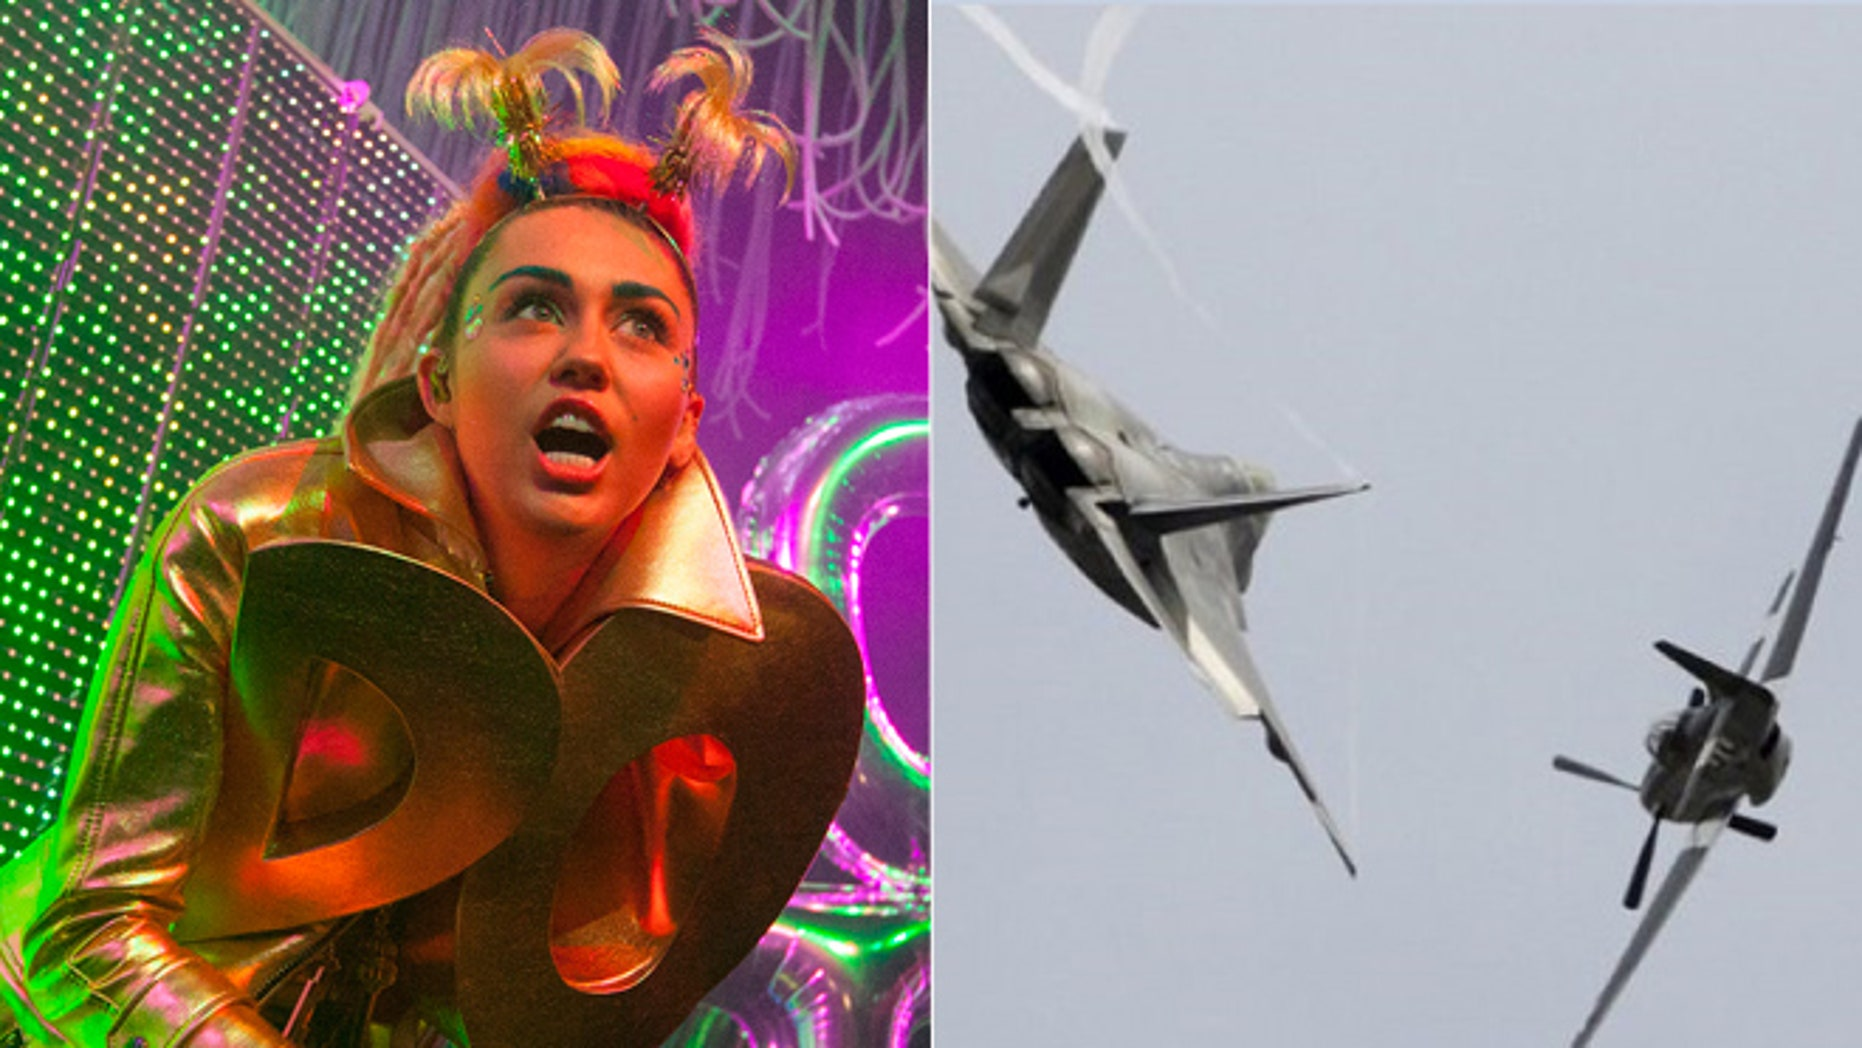 At left, Miley Cyrus; at right, a U.S. Air Force P-51 Mustang and an F-22 Raptor fighter jet.